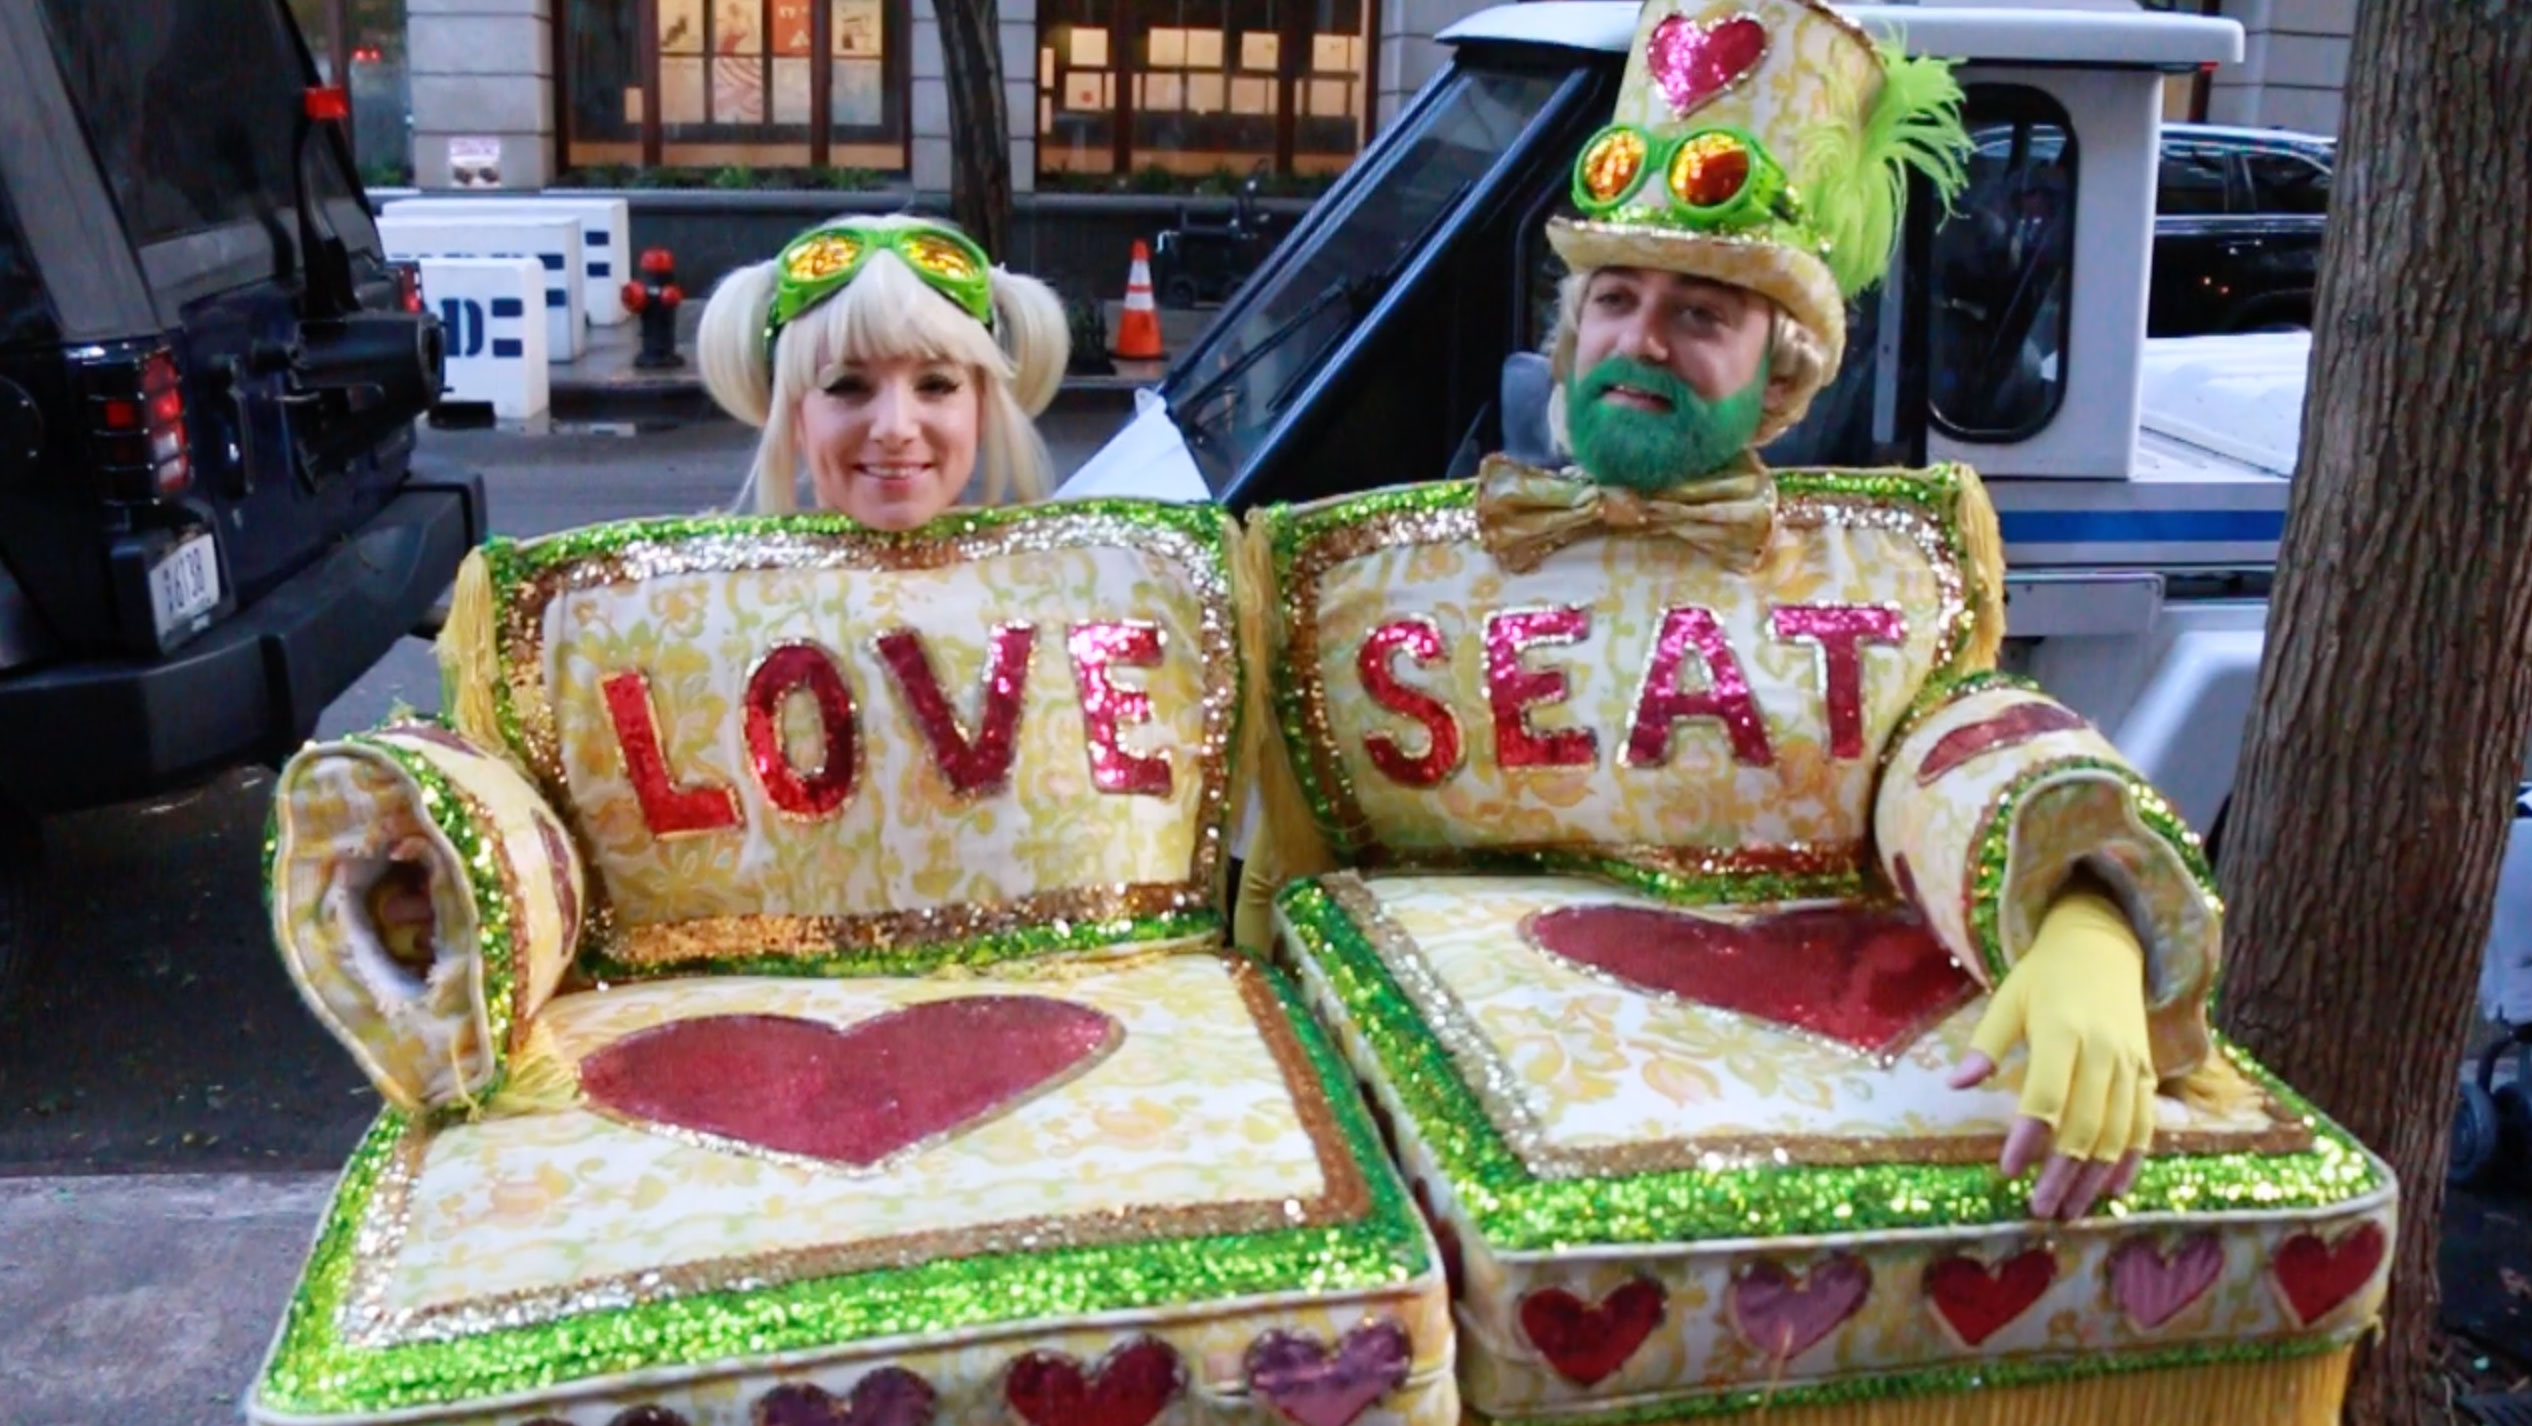 <div class='meta'><div class='origin-logo' data-origin='none'></div><span class='caption-text' data-credit=''>The winner of the costume contest was a ''love seat'' that you can really sit on.</span></div>